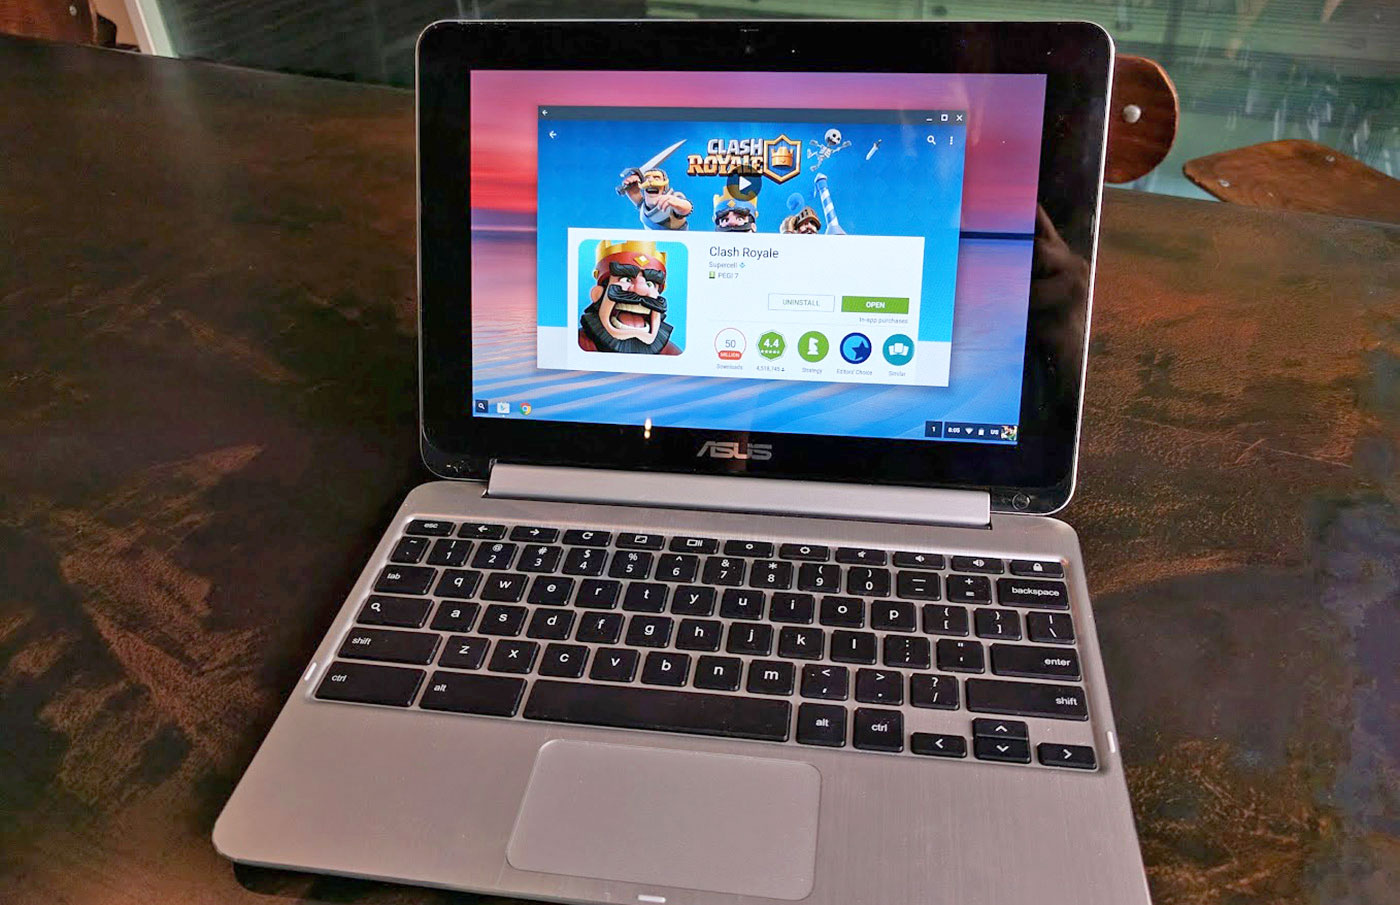 The Chromebook Flip becomes the first Chromebook to get access to the Play Store